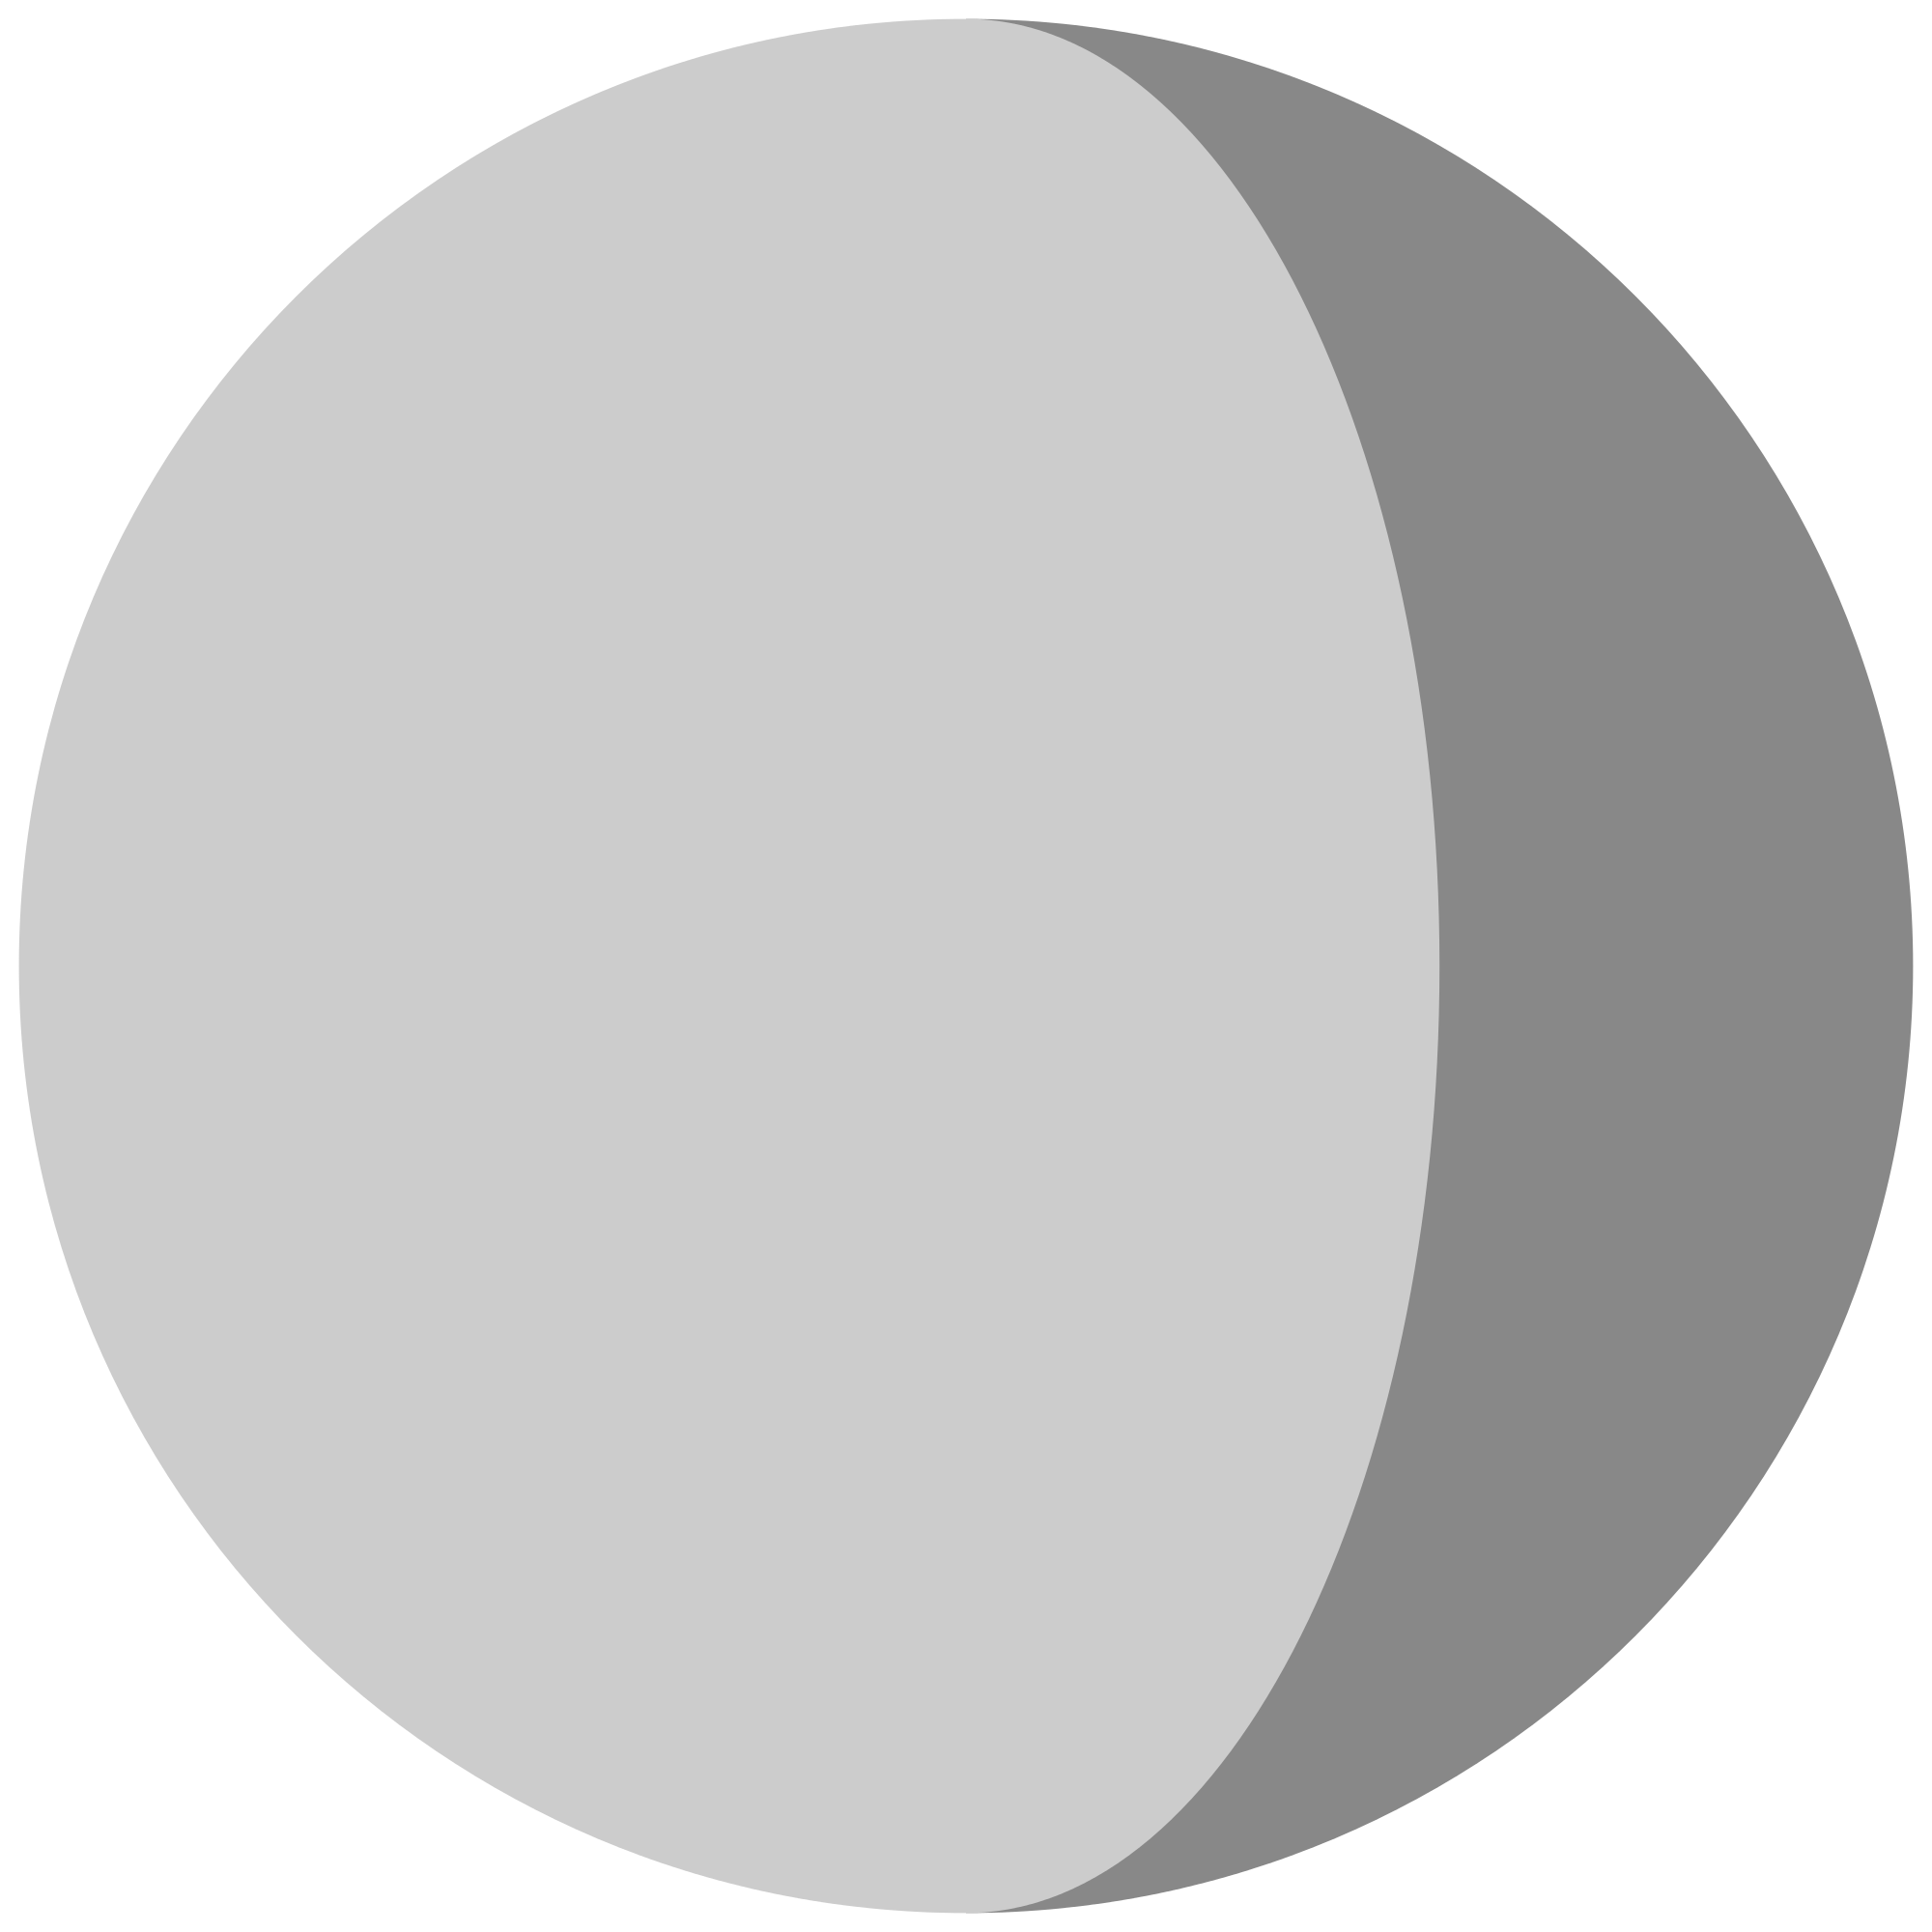 half oval png